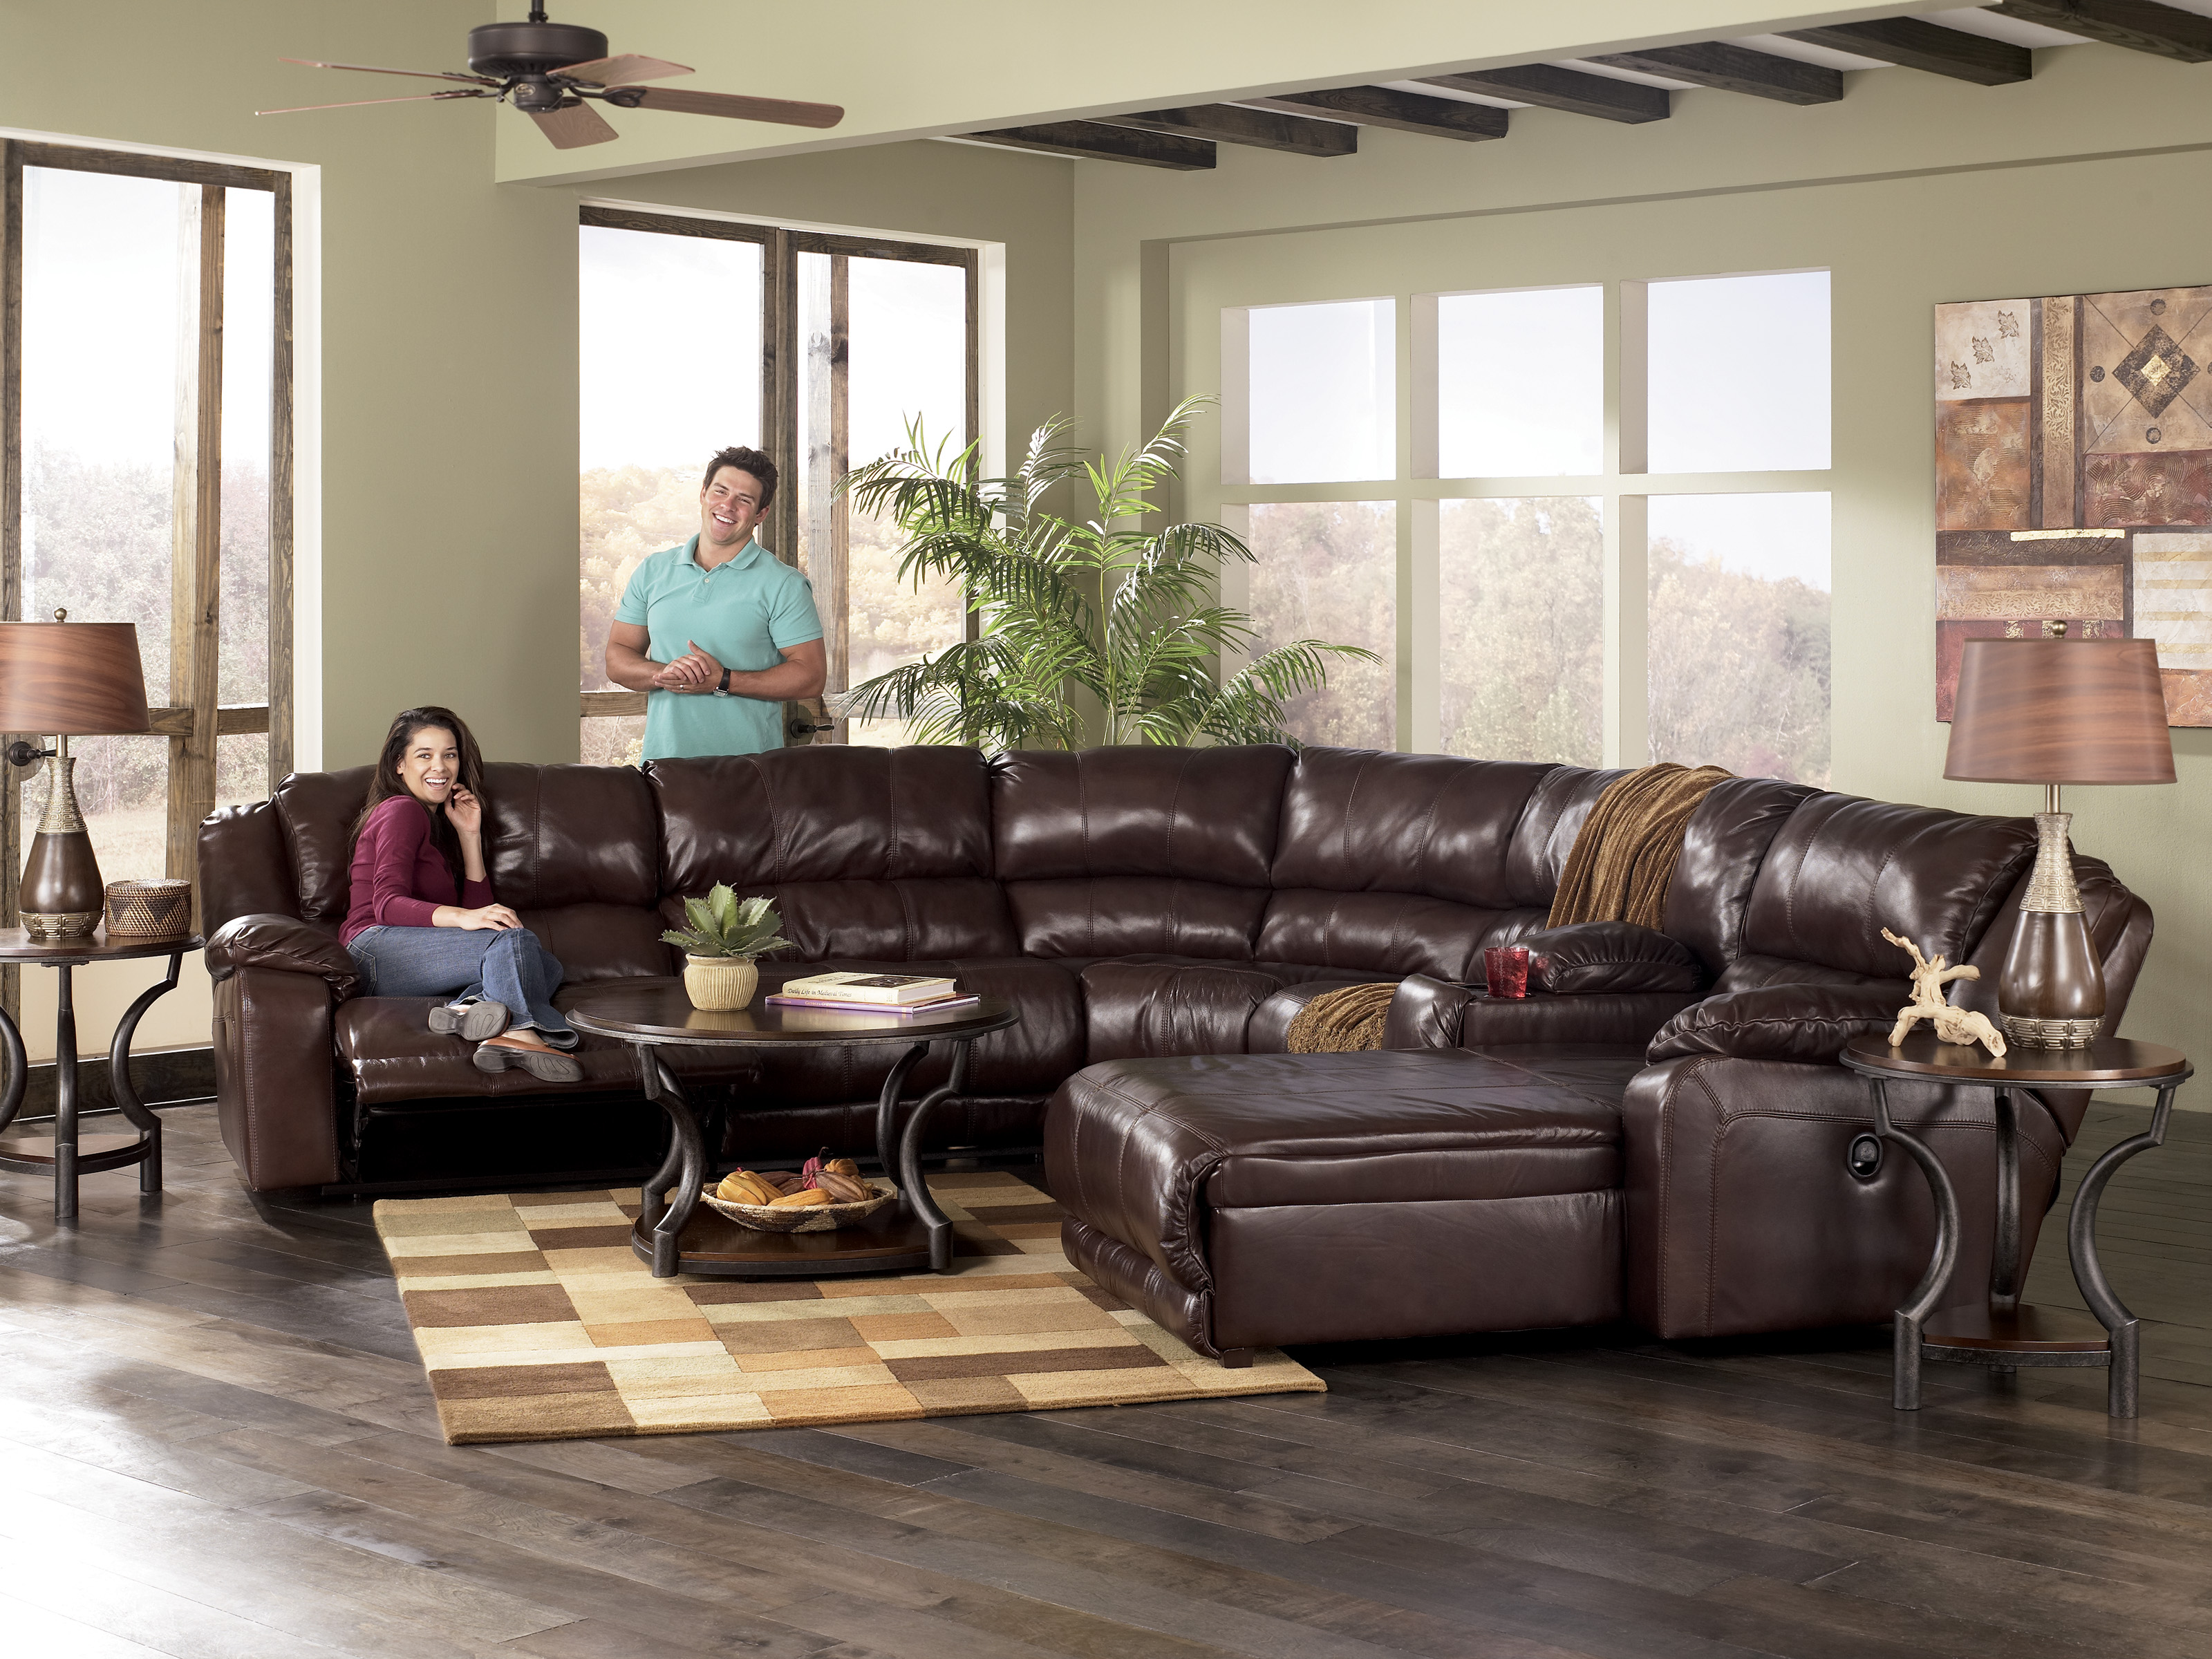 Ashley Furniture Braxton Leather Sectional 3200 x 2400